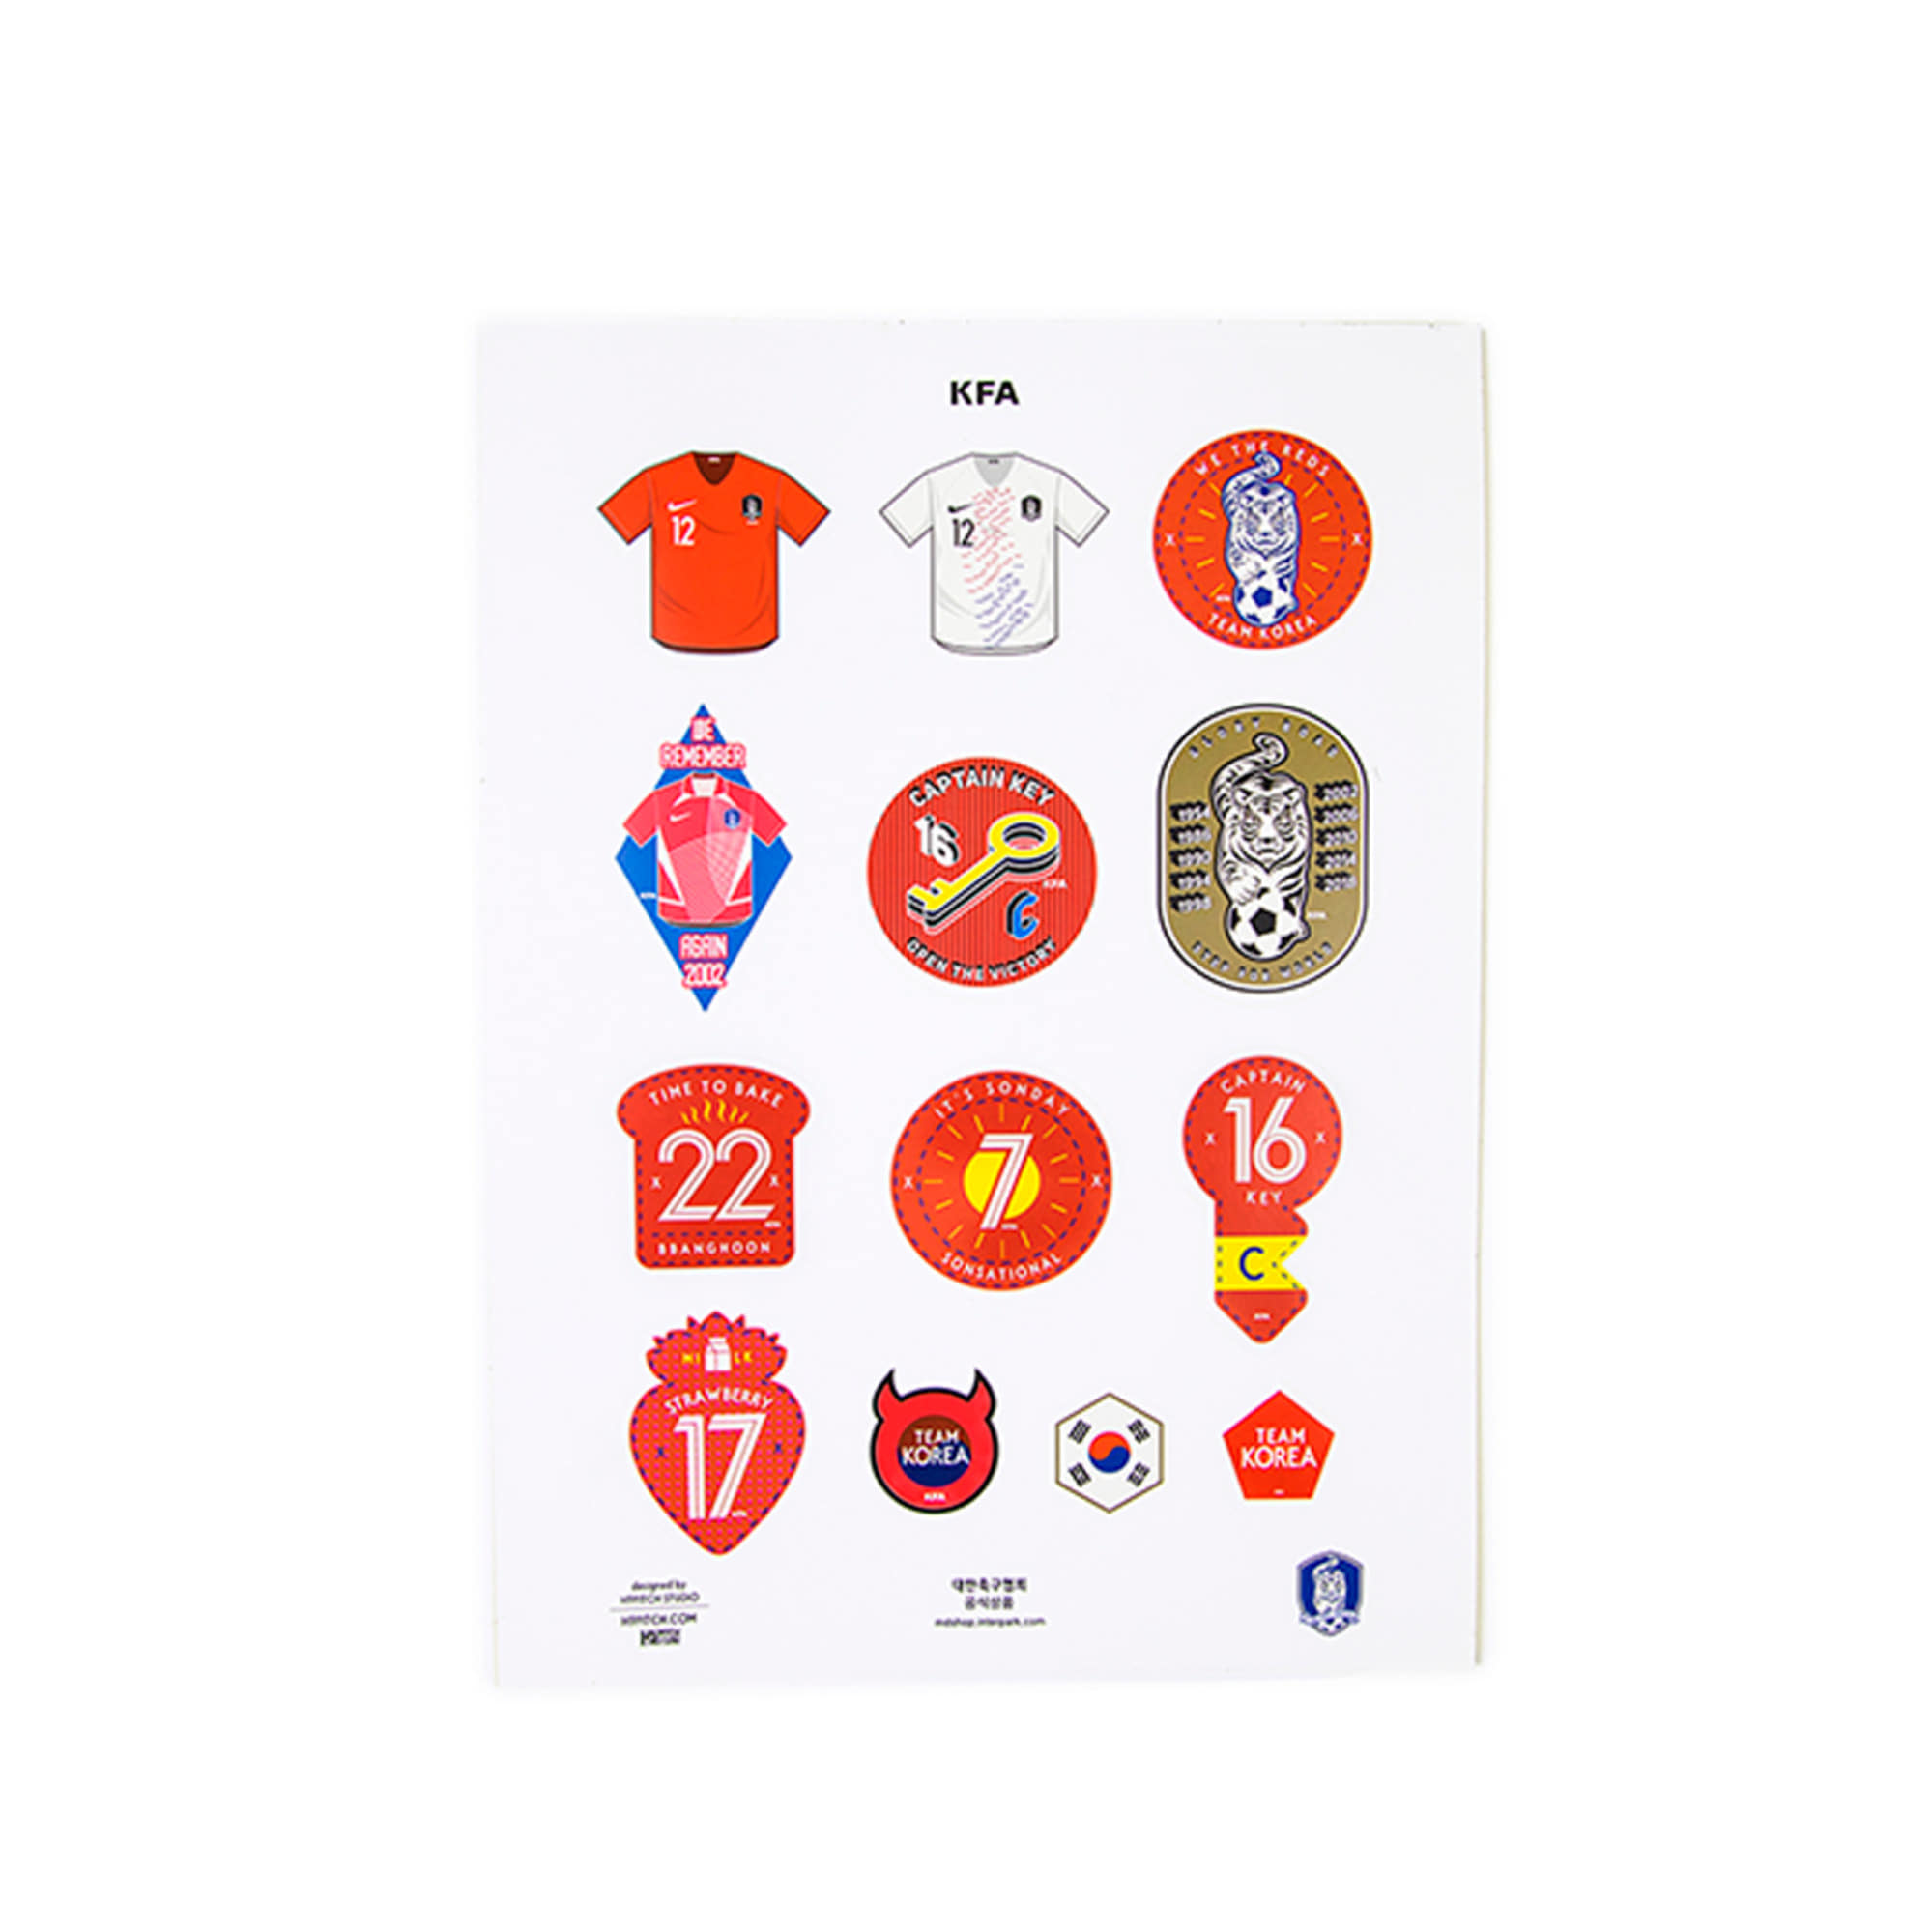 KFA STICKER SET 2018